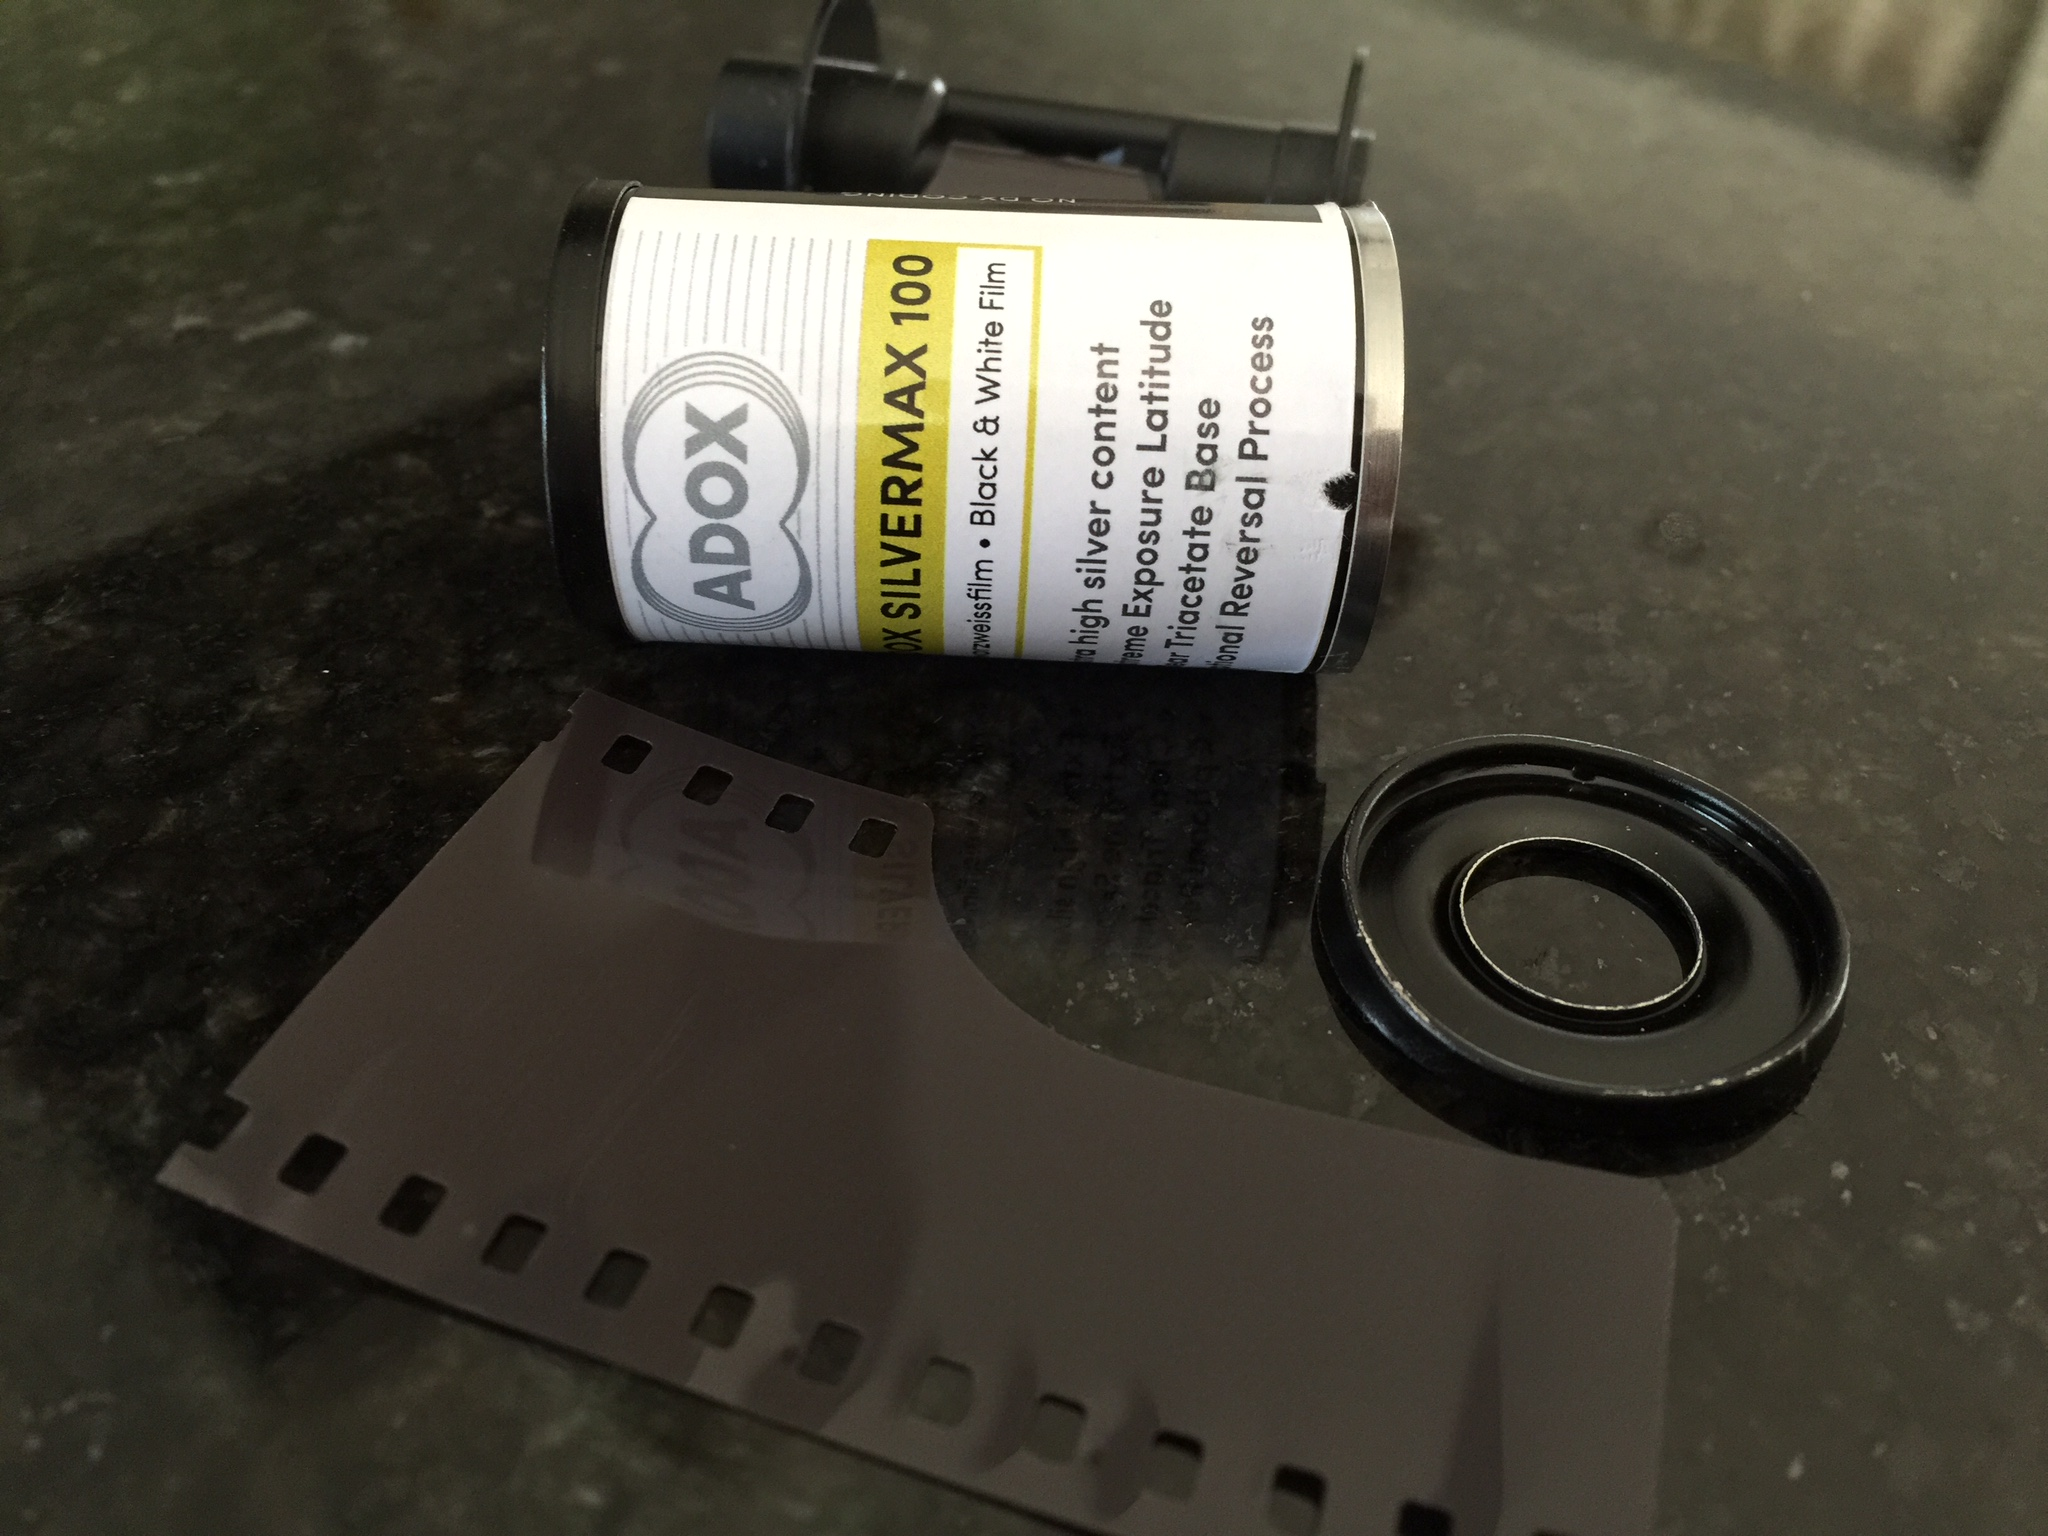 Canister guts left over after extracting the film for developing